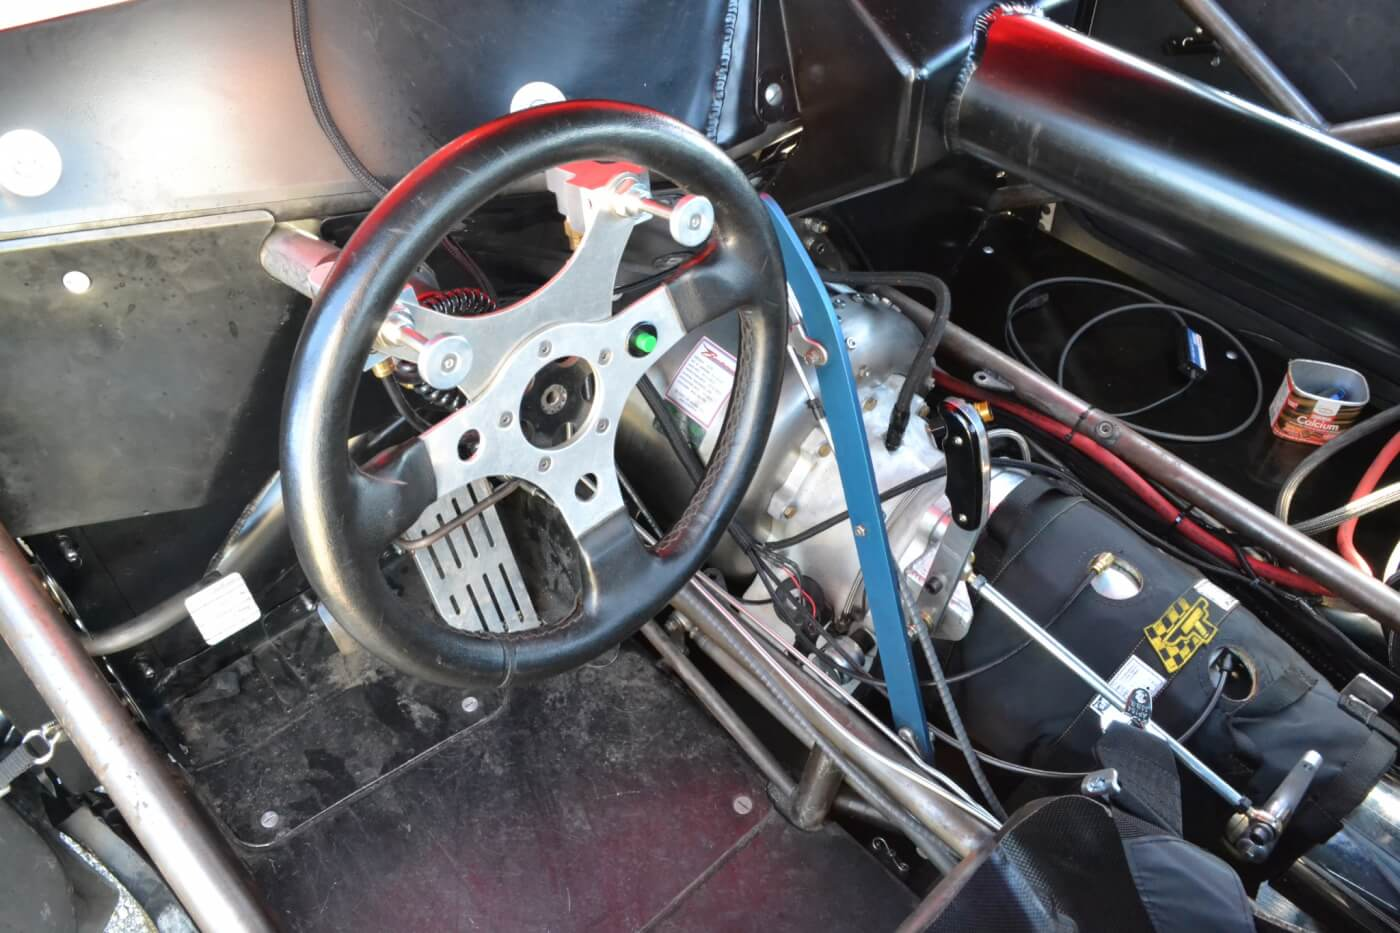 The interior is all business, with a carbon dash, minimal interior and tubular steering column. The black cover for the transmission is a transmission blanket, which protects the driver from any flying parts should breakage occur.